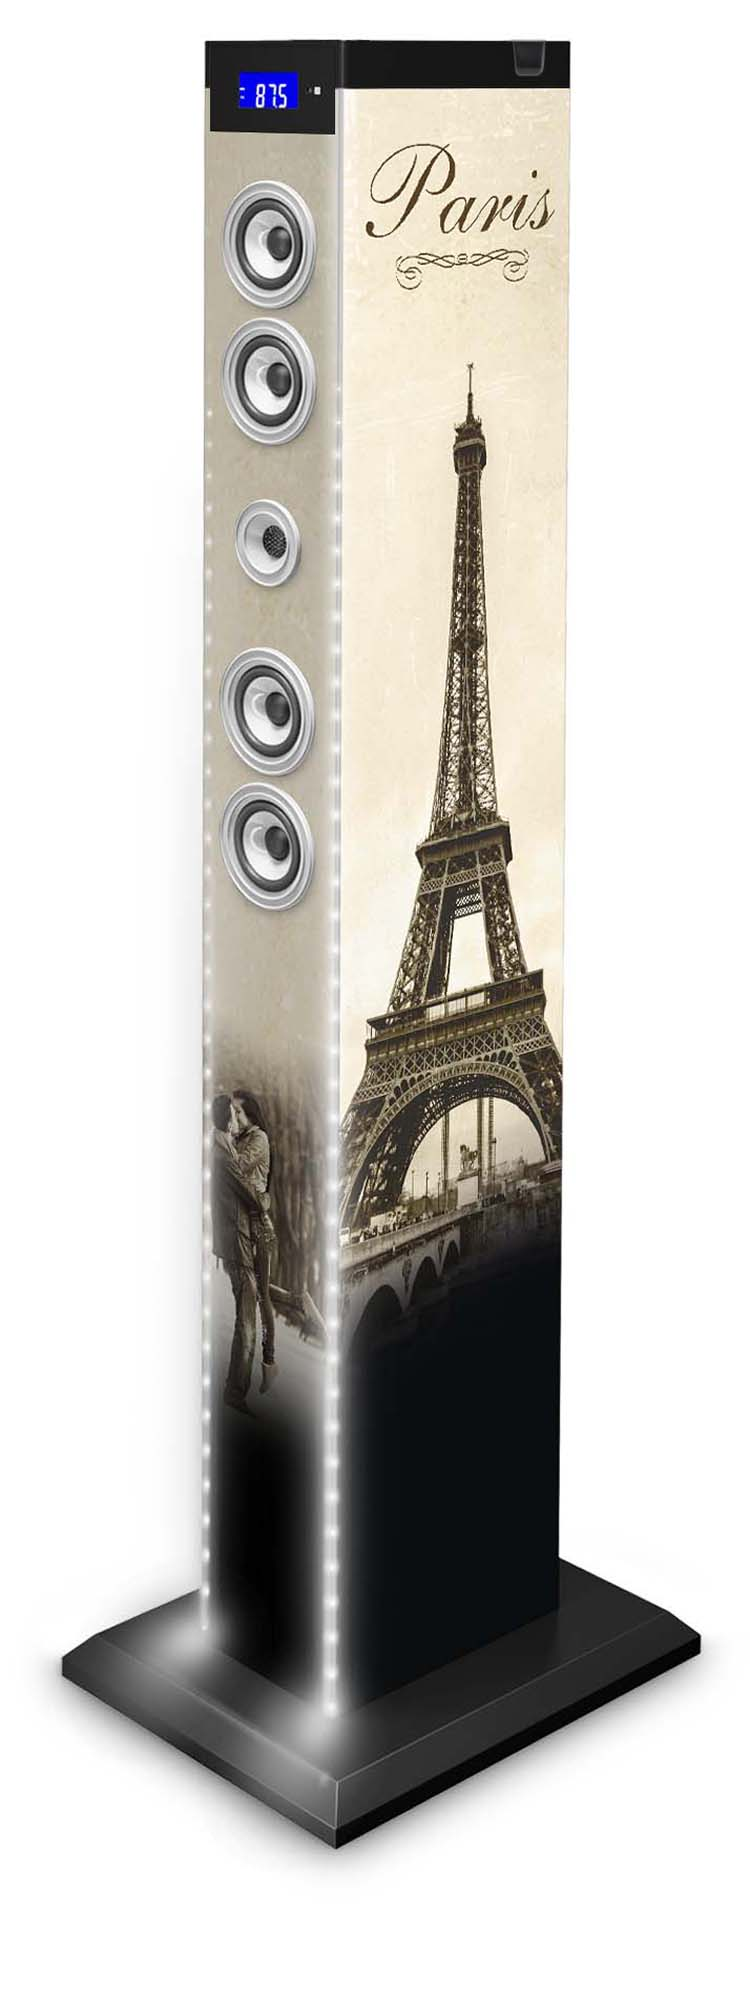 multimedia tower light paris tw9paris2light1 bigben. Black Bedroom Furniture Sets. Home Design Ideas